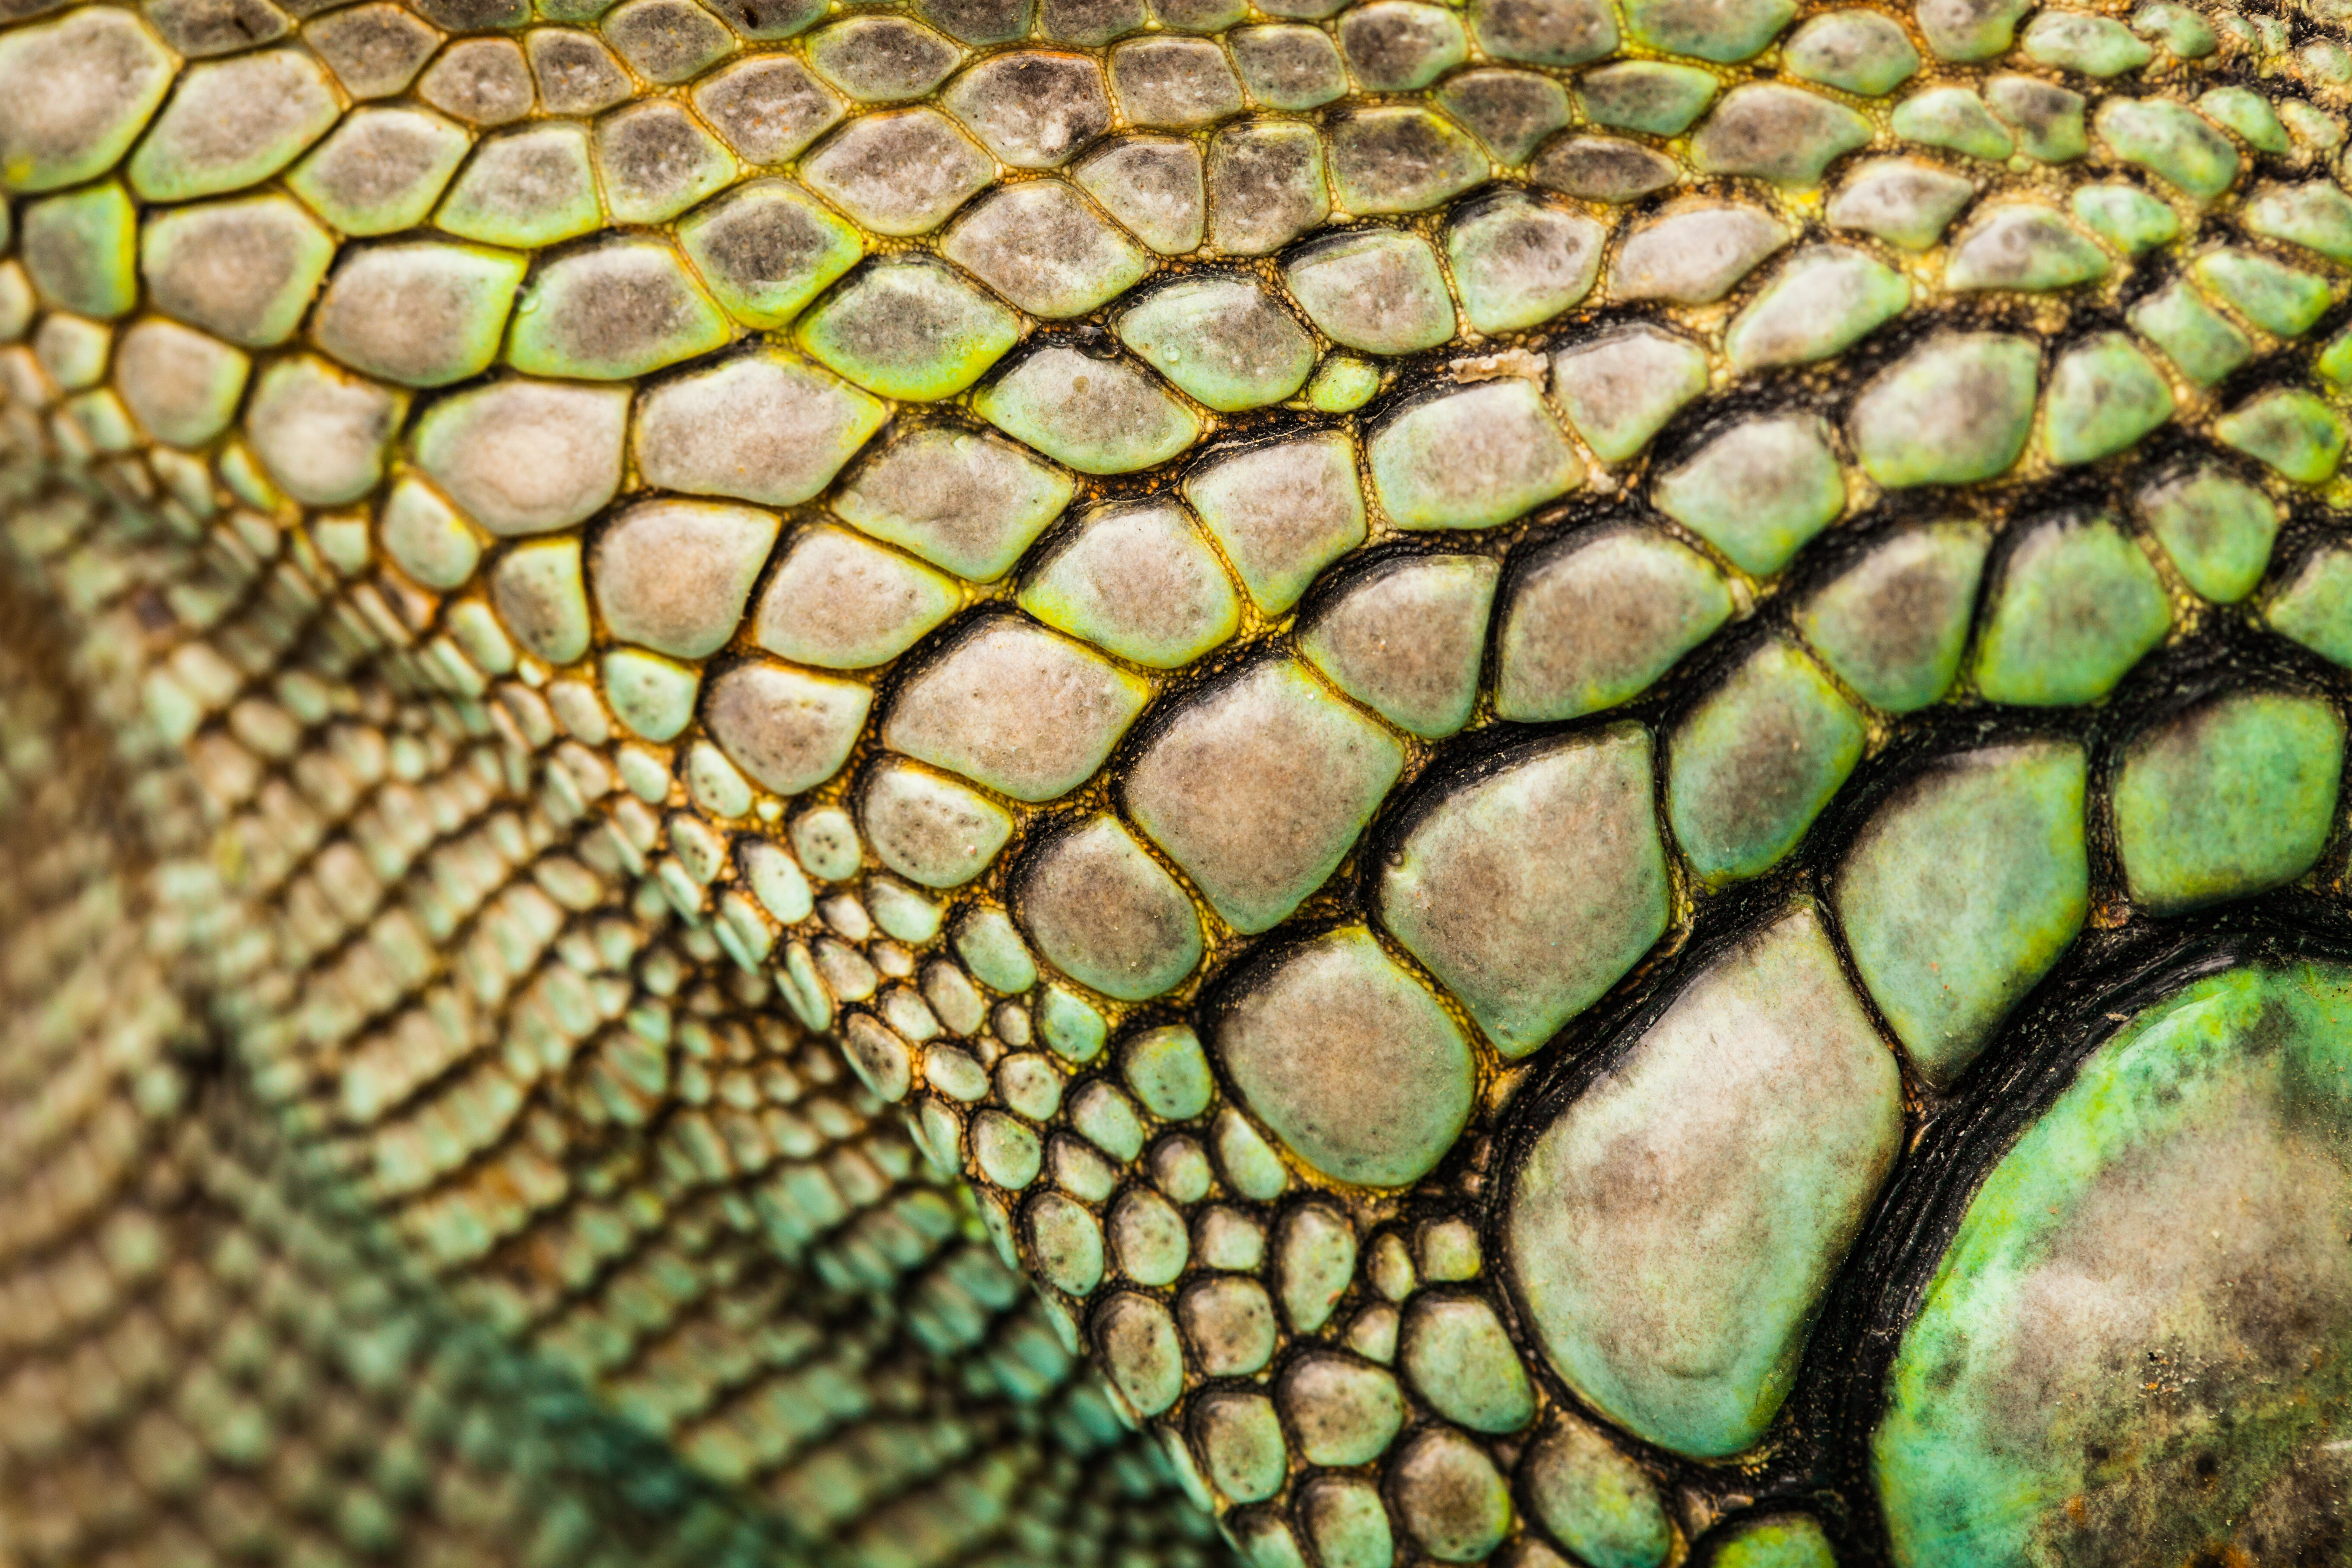 Biology All About Reptiles Level 1 Activity For Kids